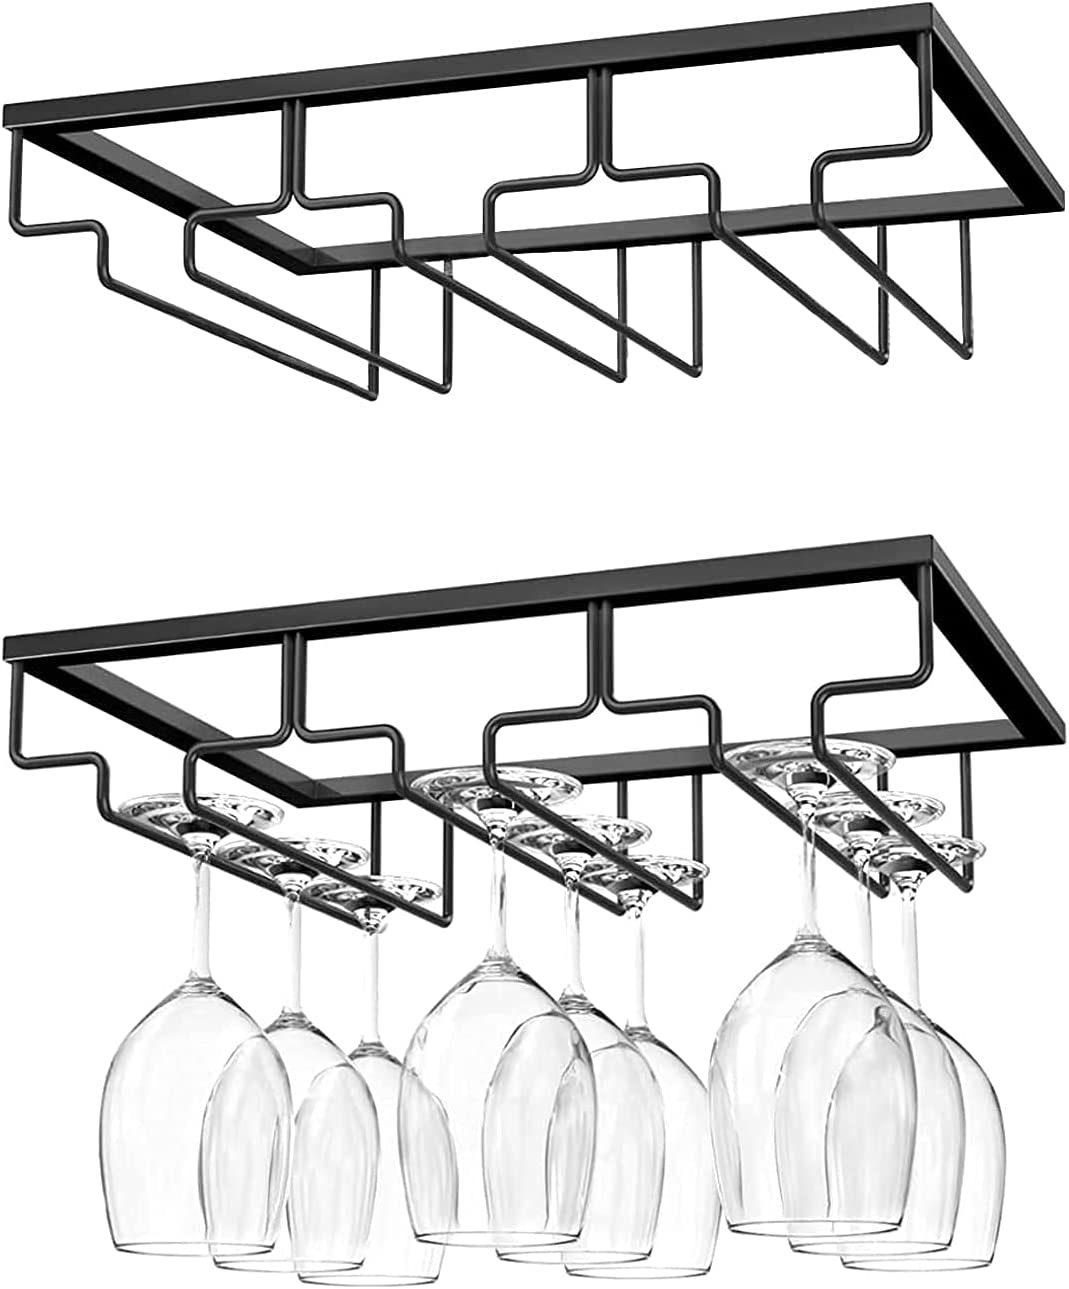 YRHH Wine Glass RackHanging Opening large release Gorgeous sale Shelf Holder Wall Mounted